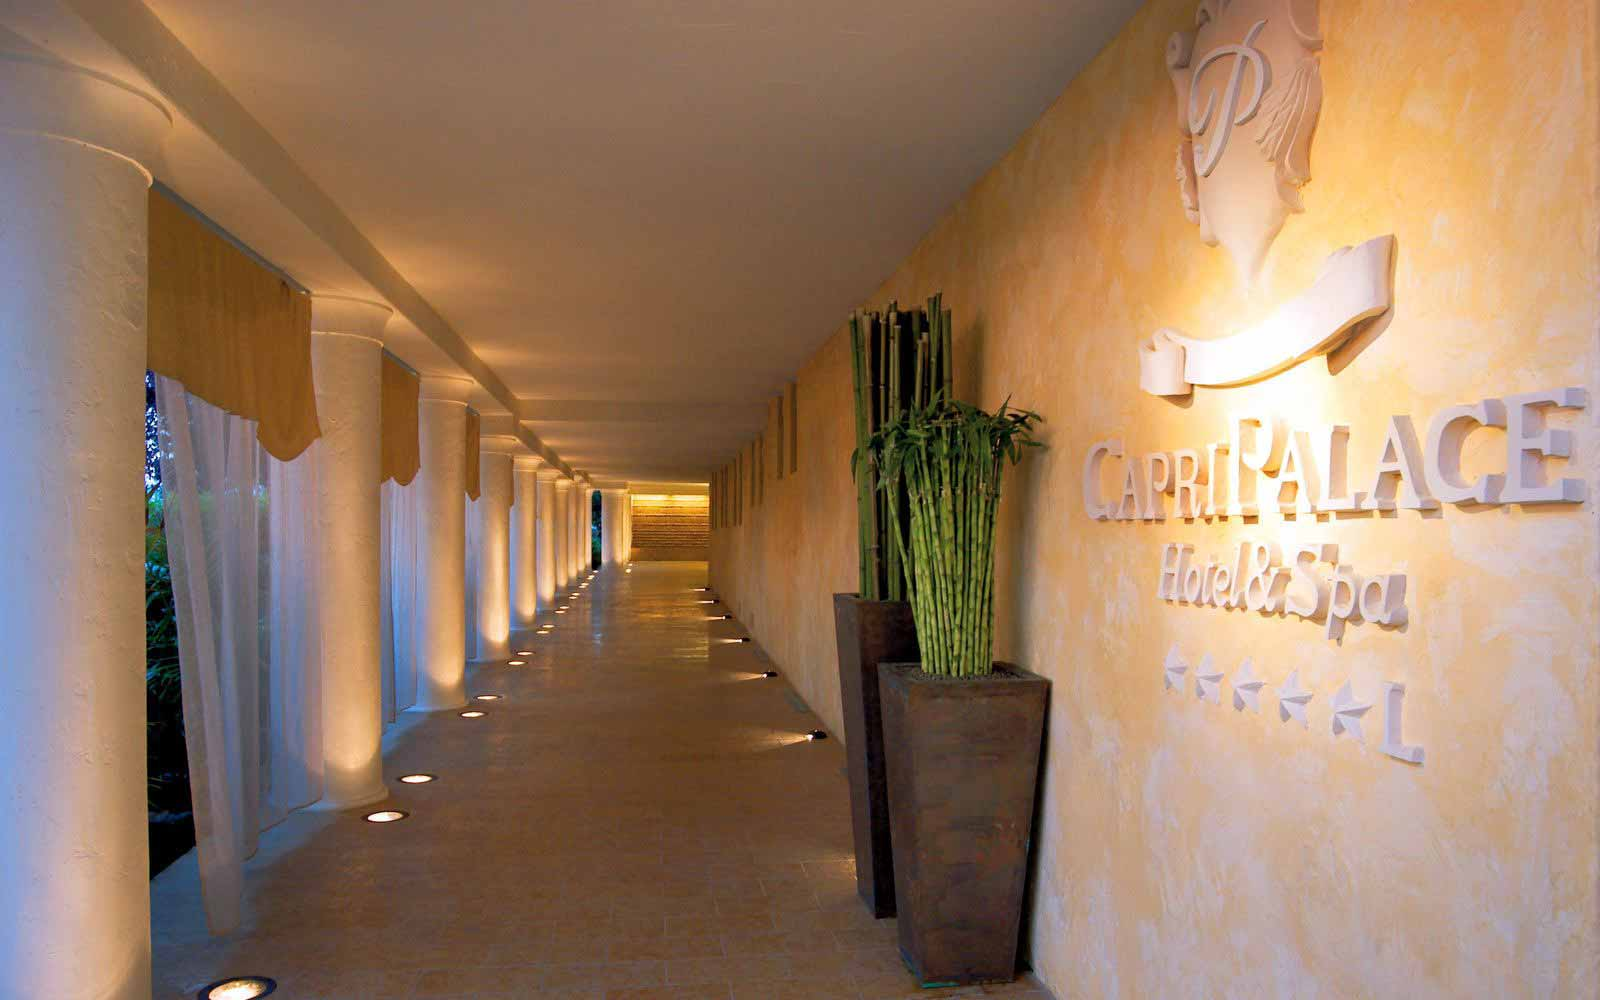 Arrival corridor at Capri Palace Hotel & Spa